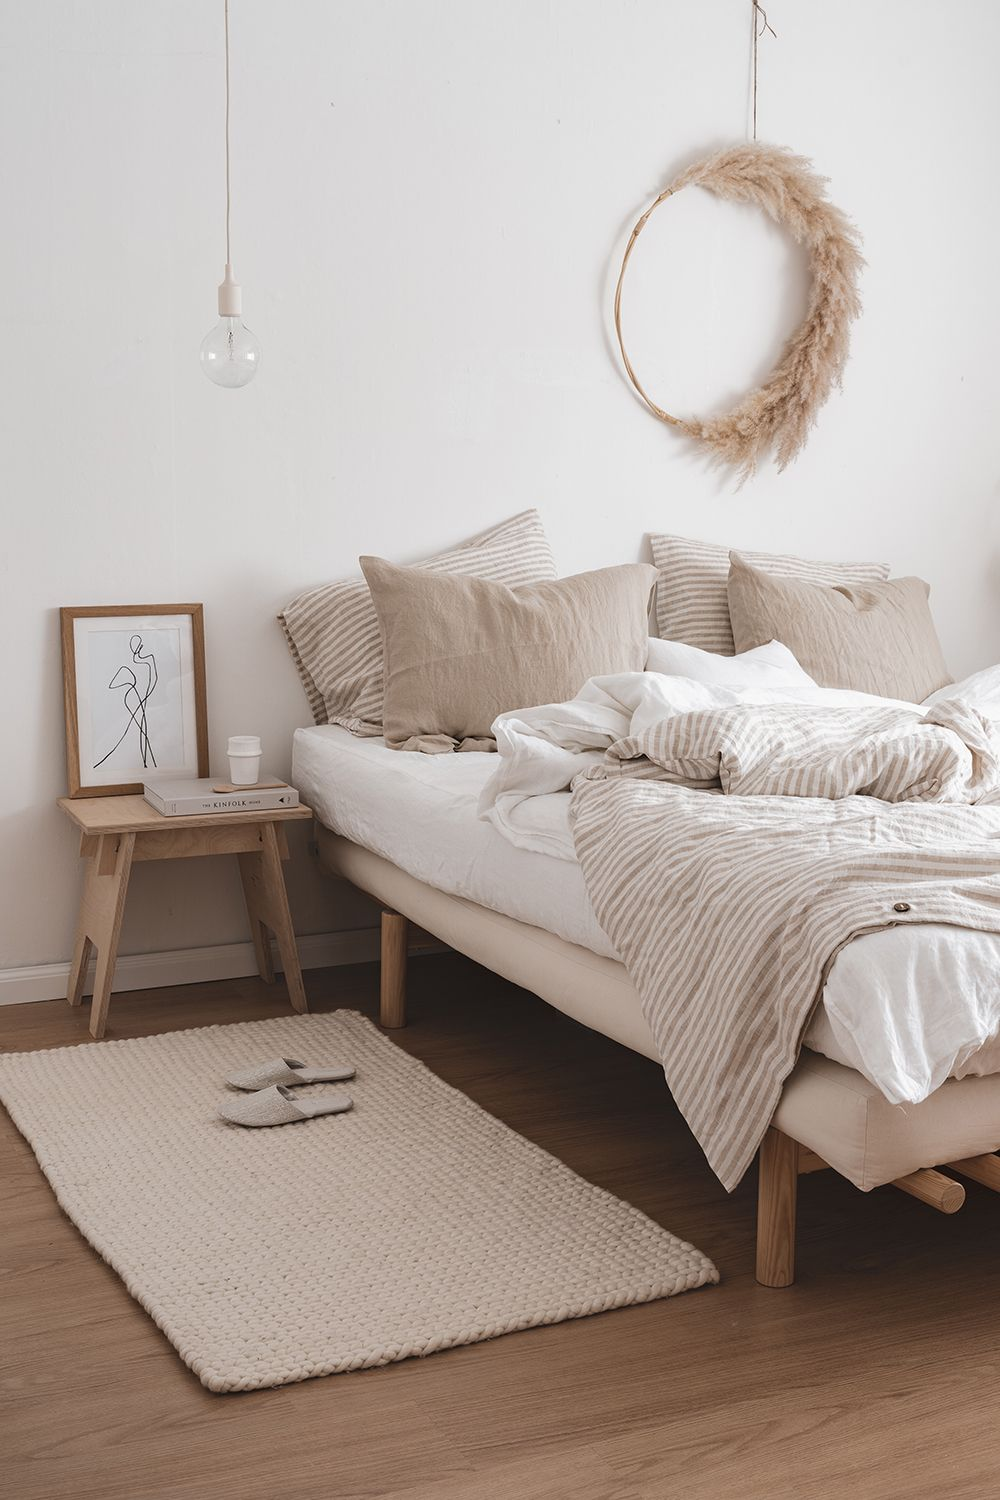 Linen With Its Soft Texture And Airy Feel Is The Epitome Of Calm Featuring Linen Bedding In Natural With Images Bedroom Inspirations Home Decor Bedroom Bedroom Design